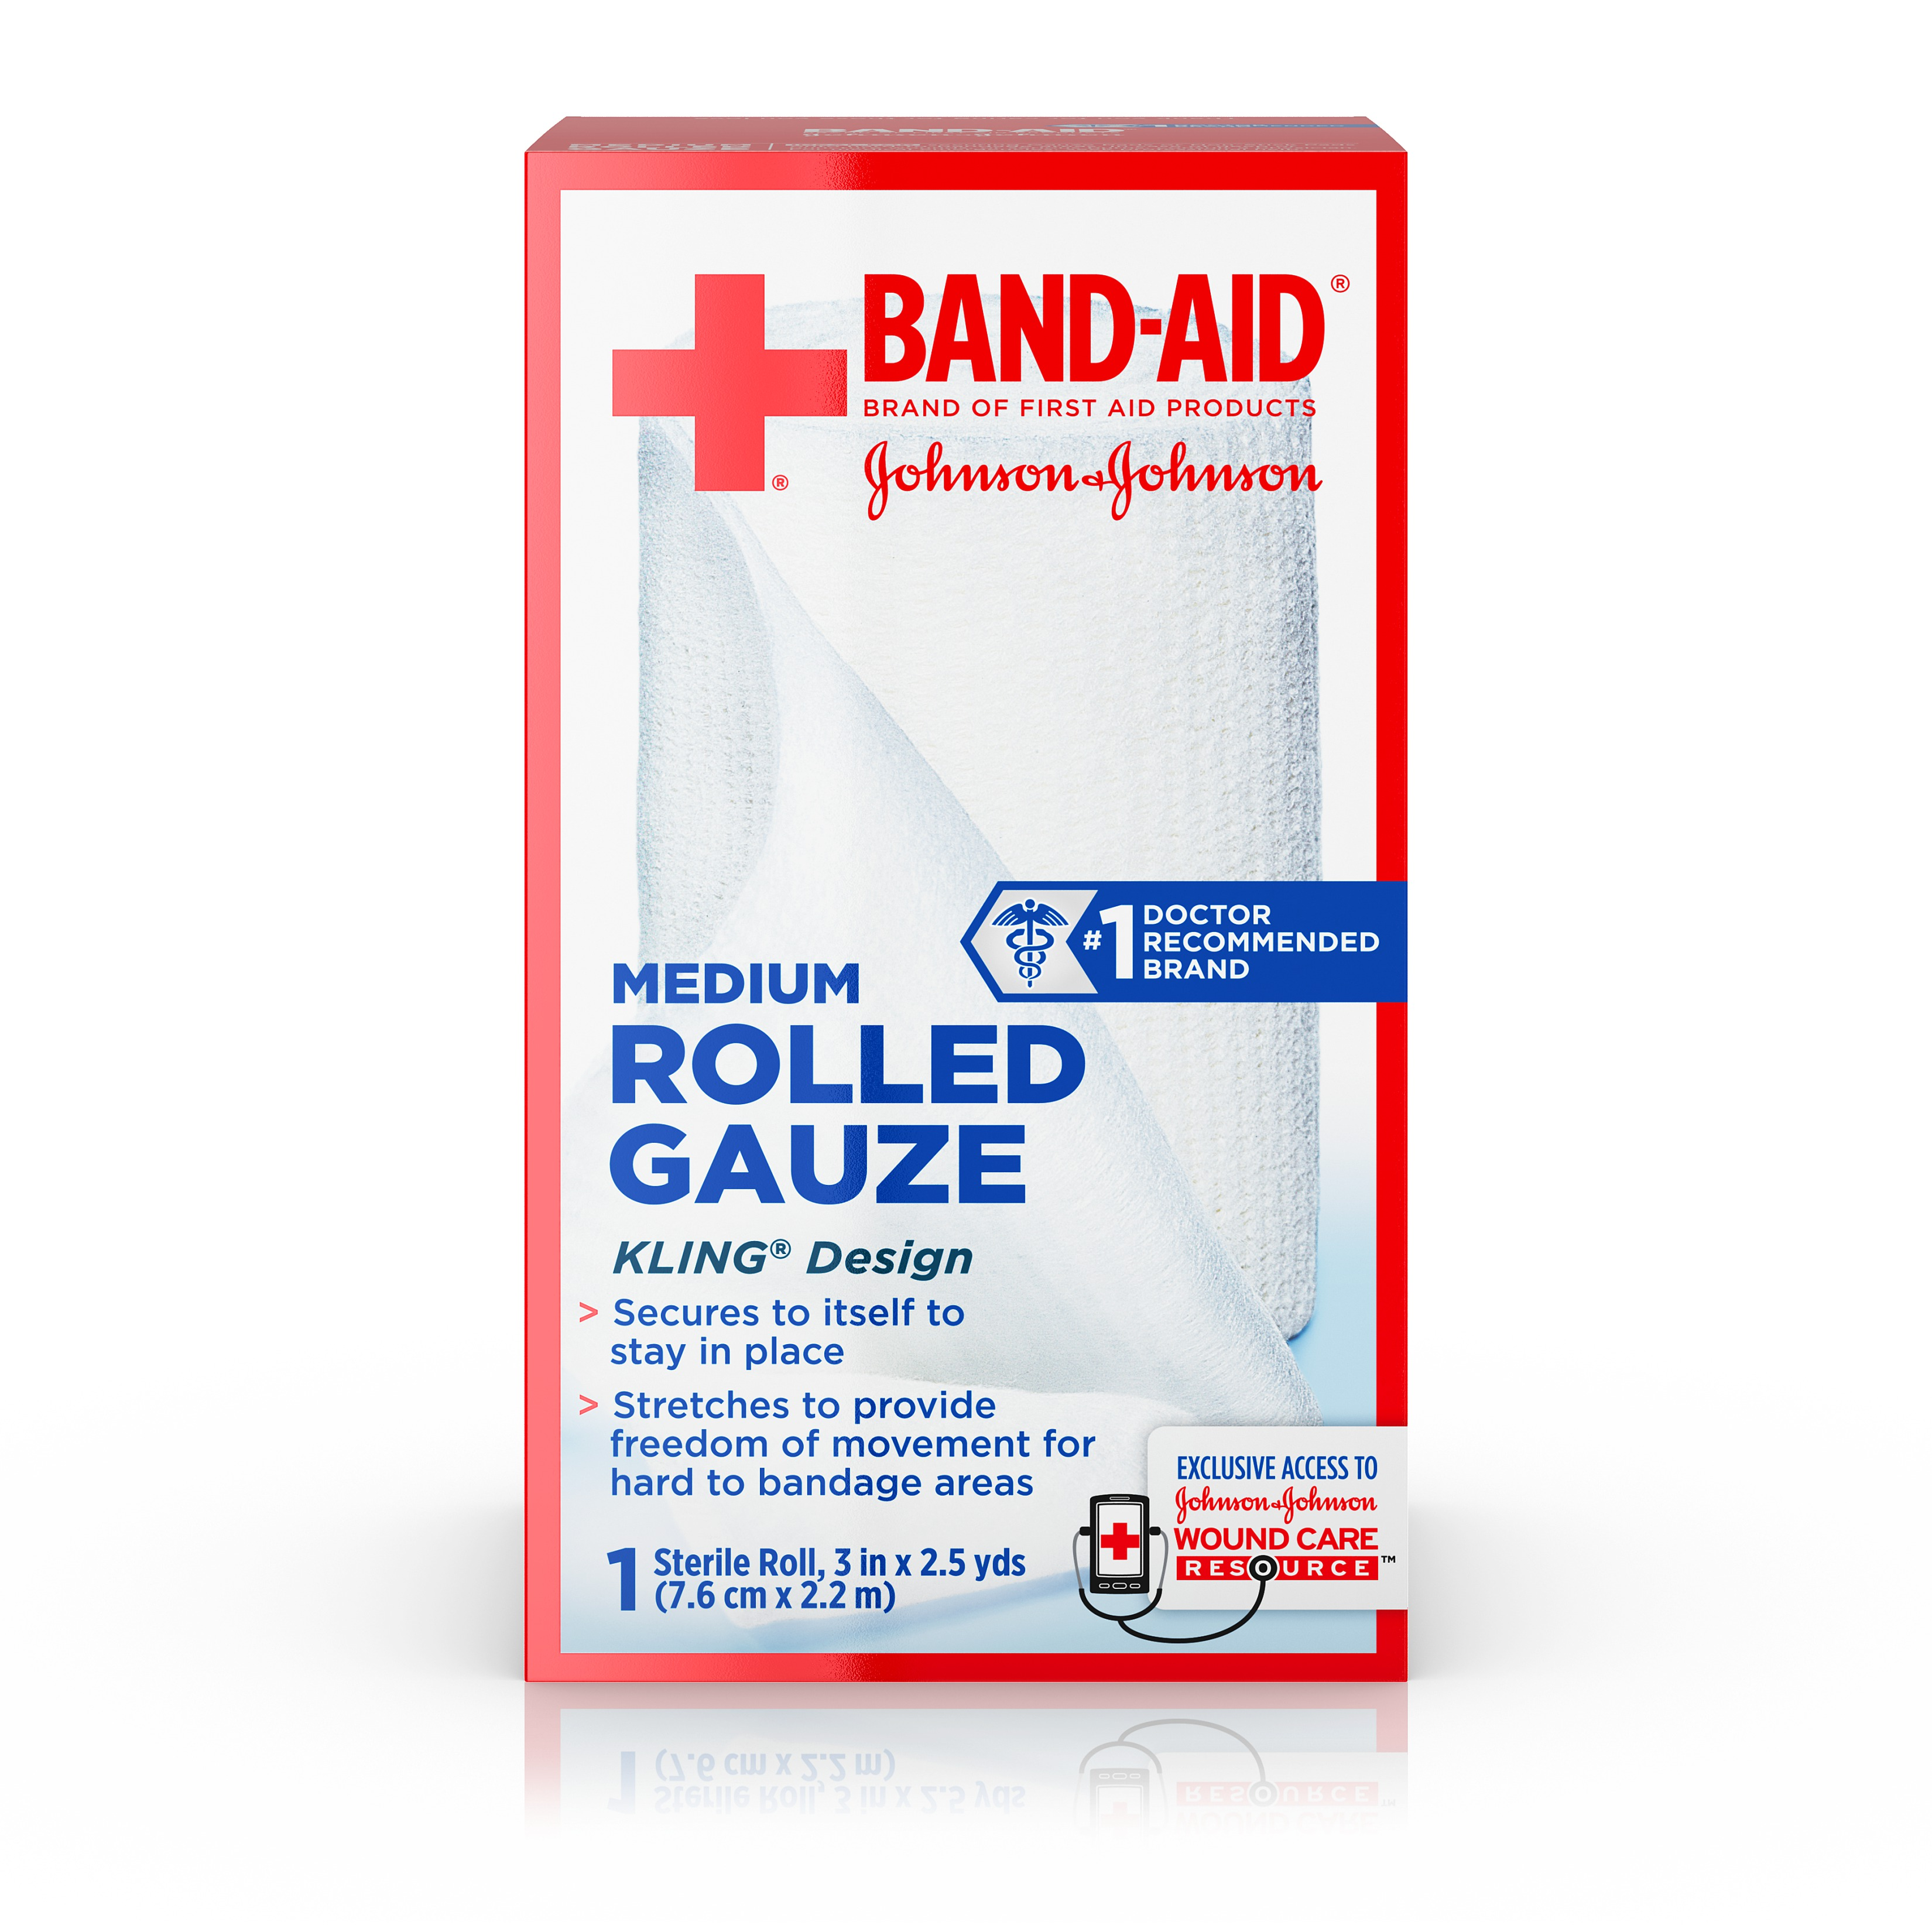 BAND-AID Brand of First Aid Products Rolled Gauze, 3 Inches by 2.5 Yards by Johnson & Johnson